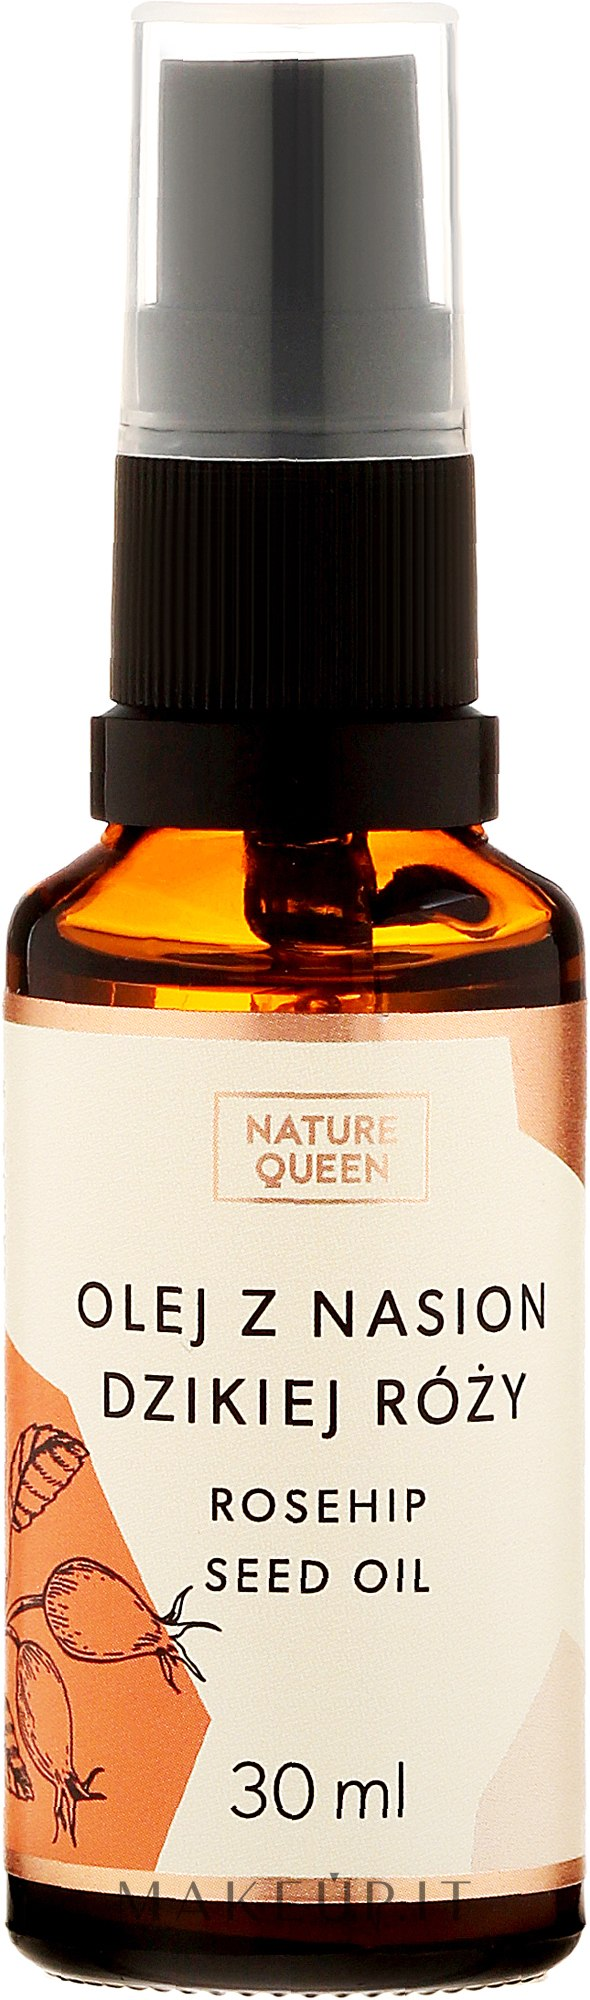 """Olio cosmetico """"Rosa canina"""" - Nature Queen Rosehip Seed Oil — foto 30 ml"""